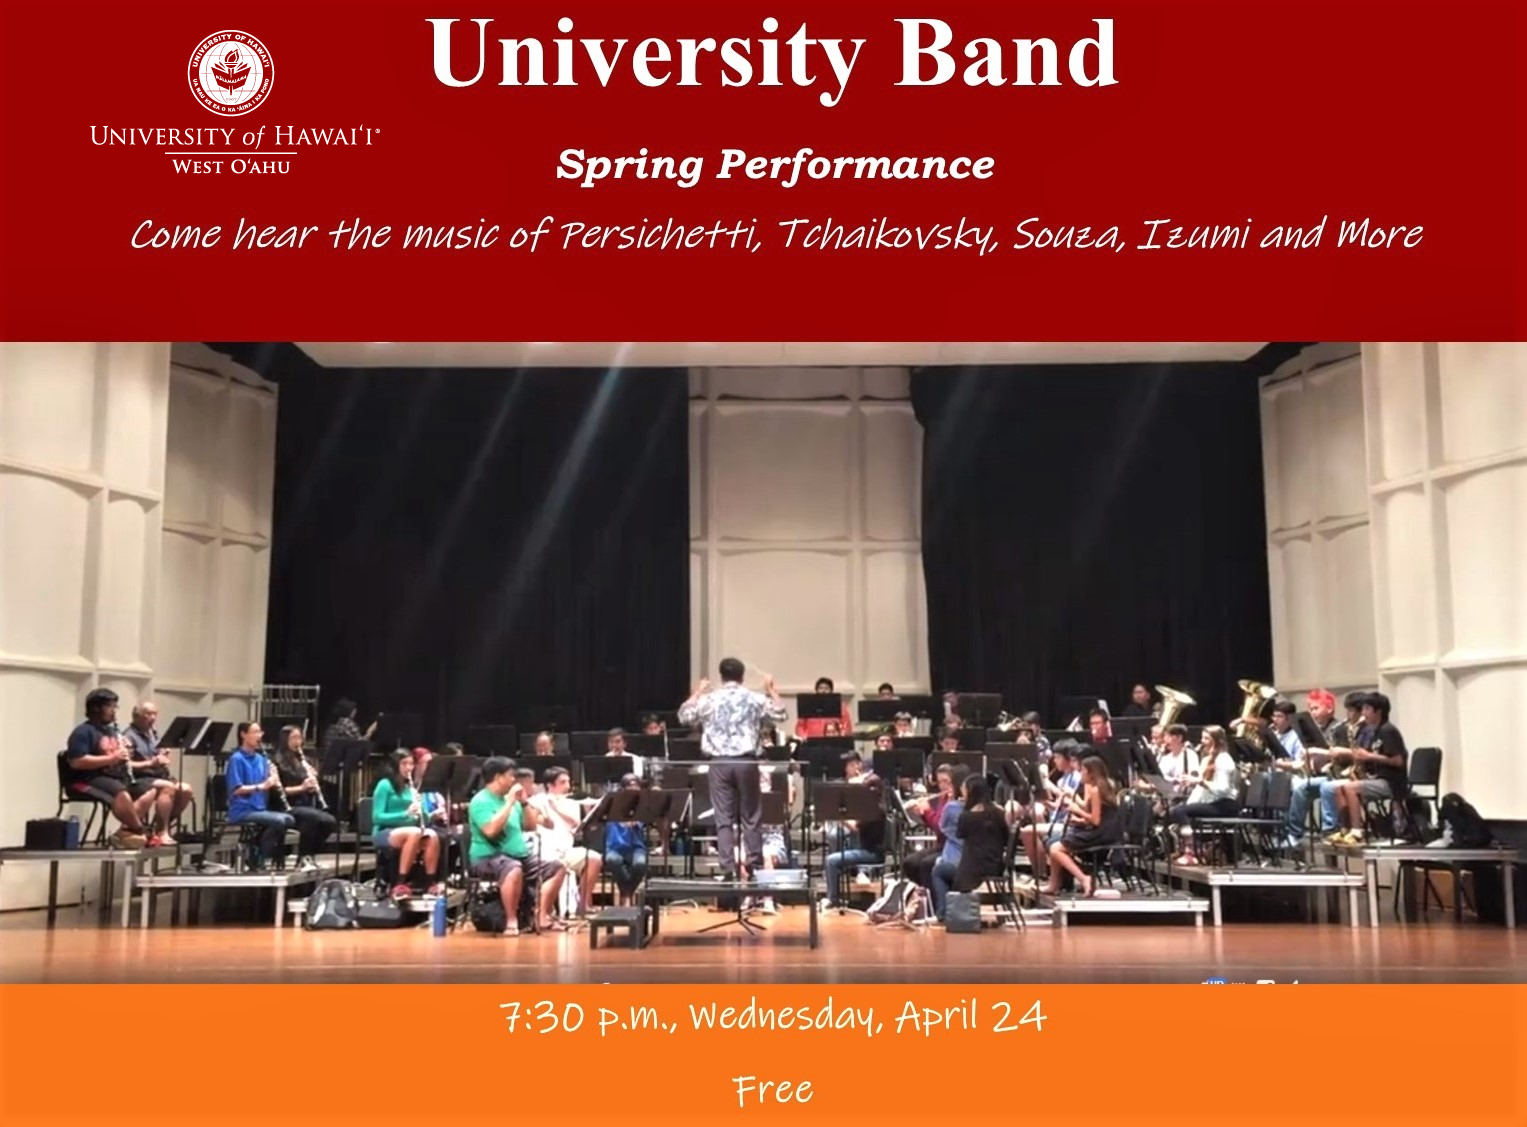 Flier for the University Band Spring performance. The flier is composed of a broad red band at the top, a photo of the band practicing in the middle and an orange band at the bottom. The colored bands contain information about the performance, including time, date, place.